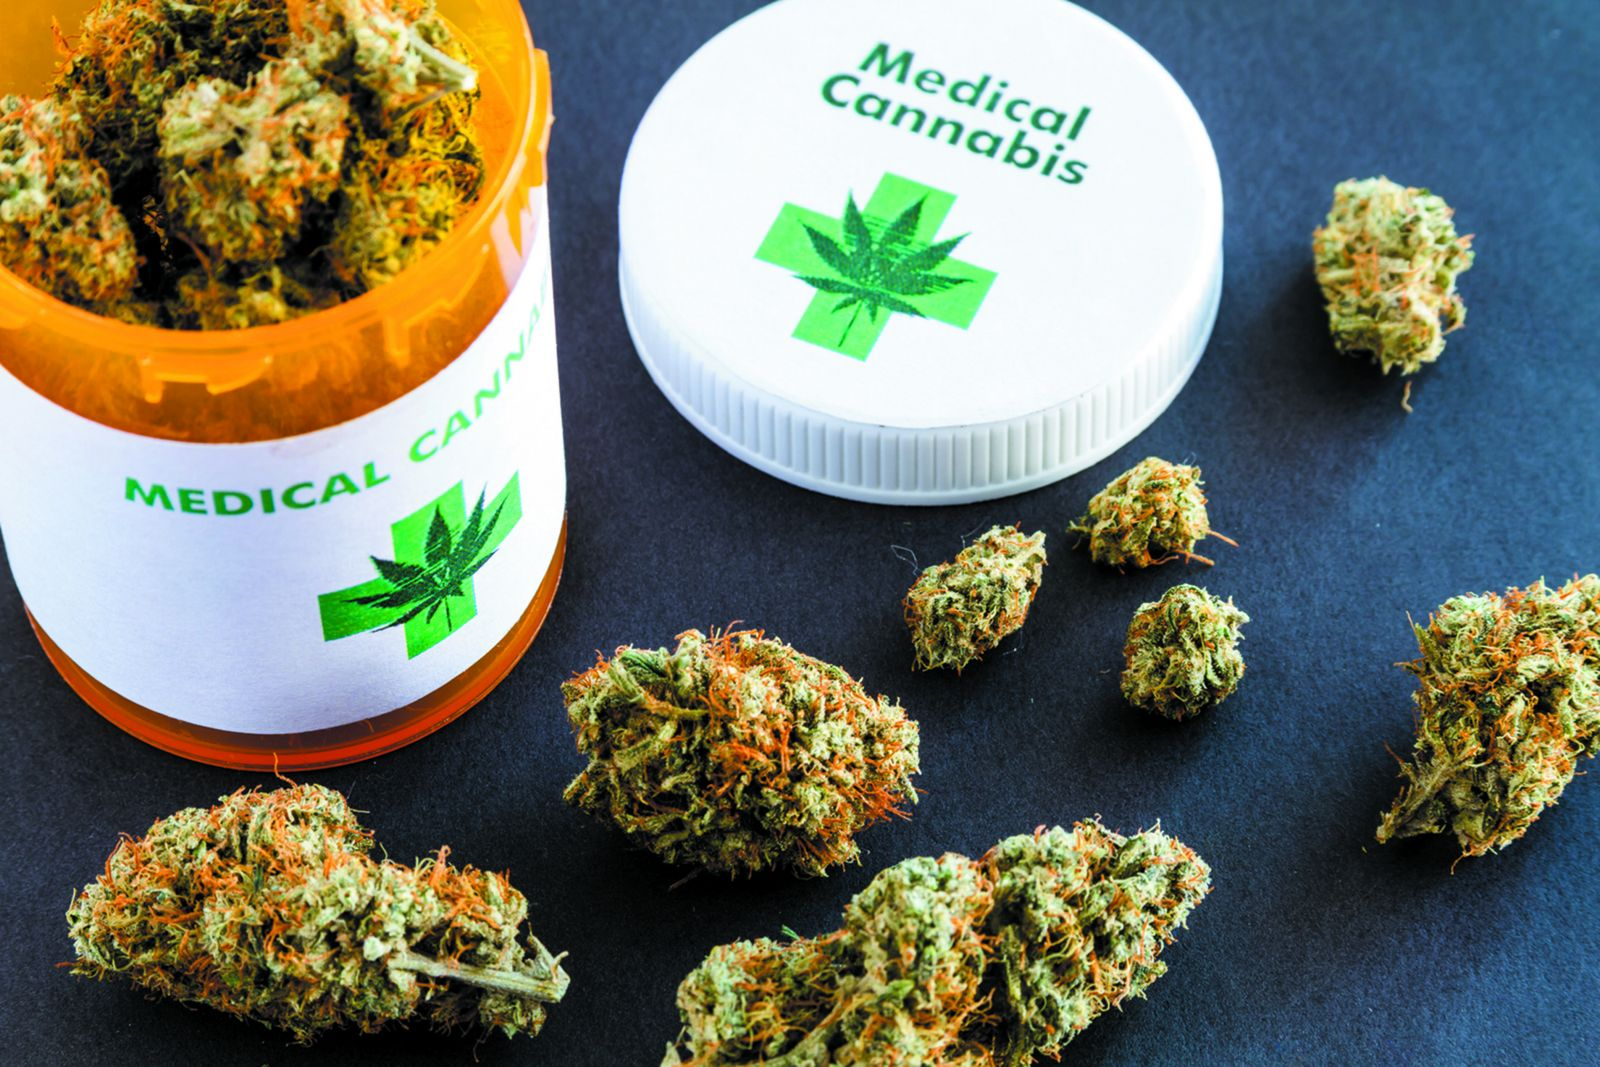 Medical marijuana: Know the facts - Harvard Health